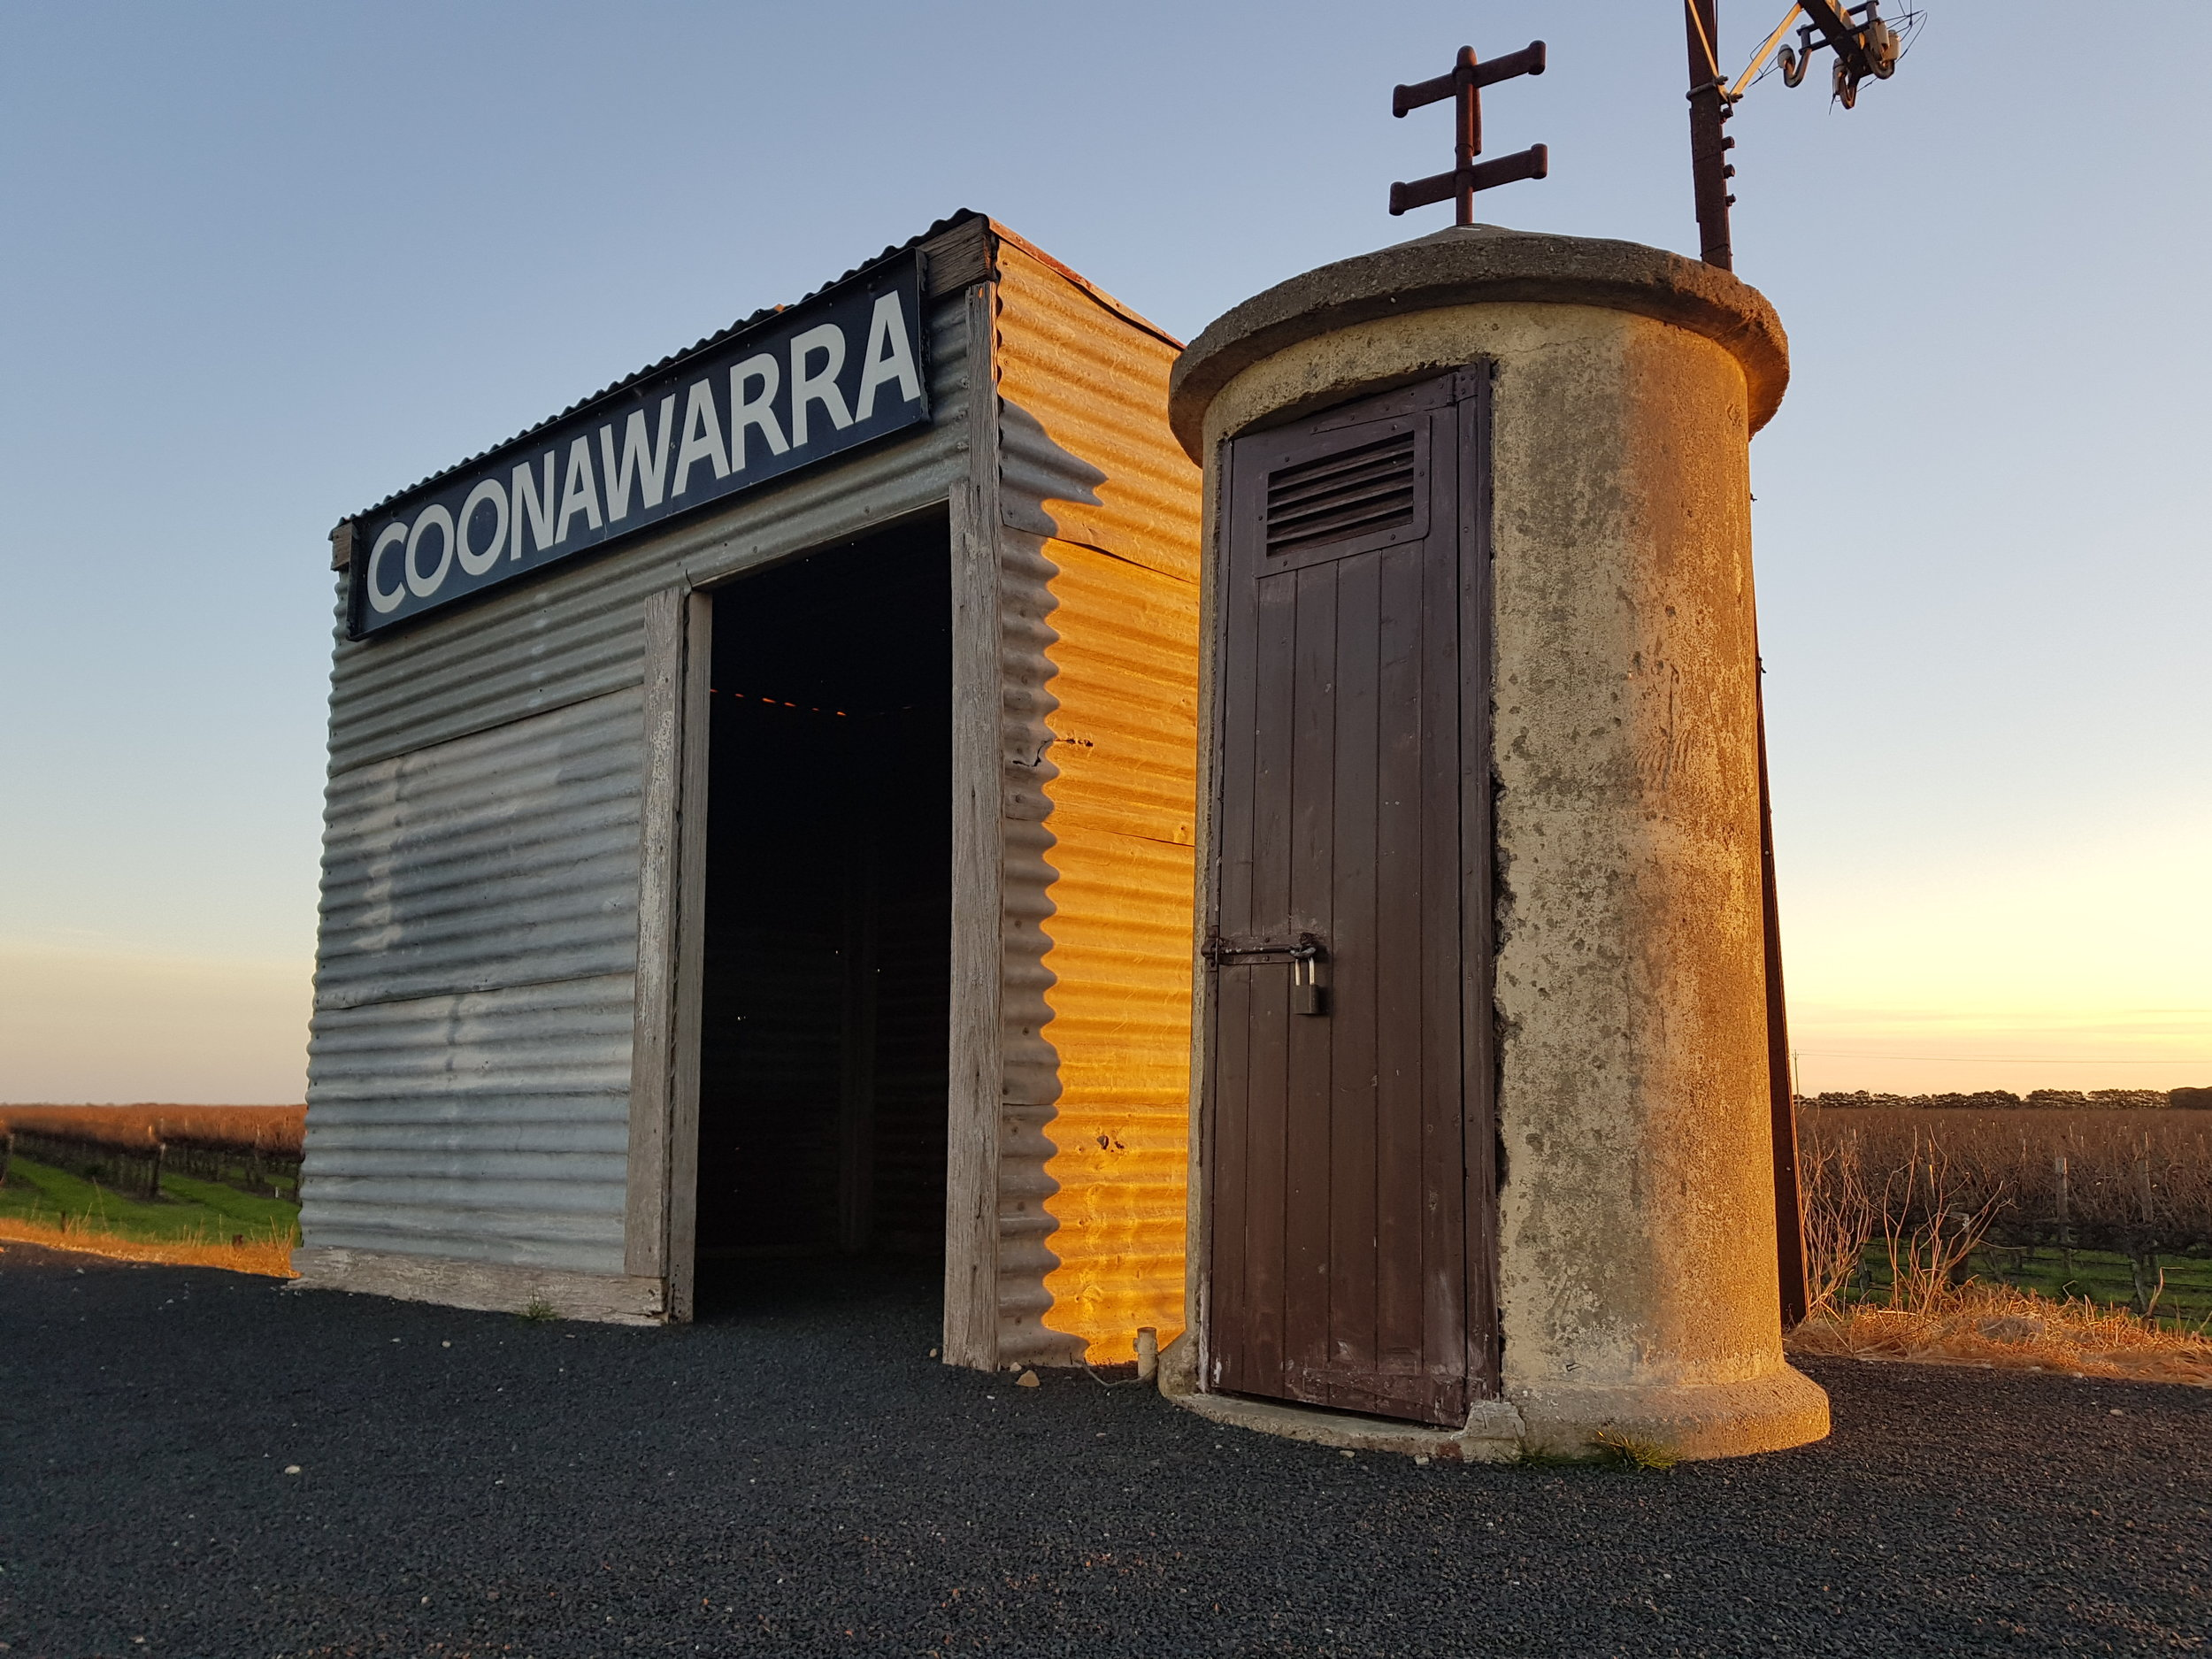 The old rail siding in the heart of the Coonawarra wine region